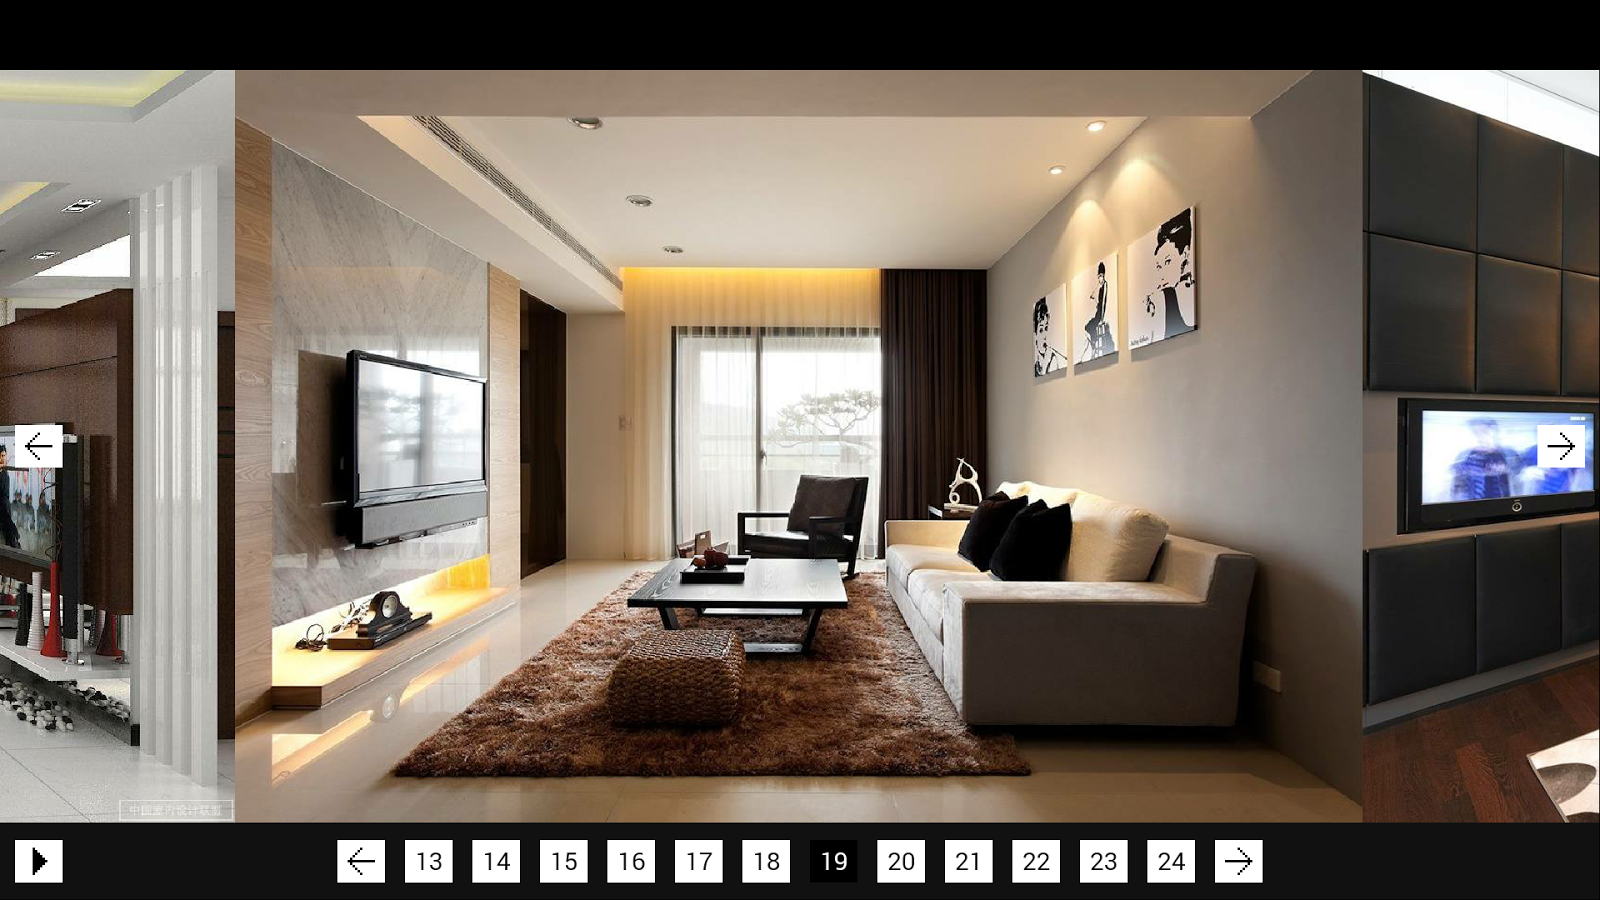 Home interior design android apps on google play for Home inner design